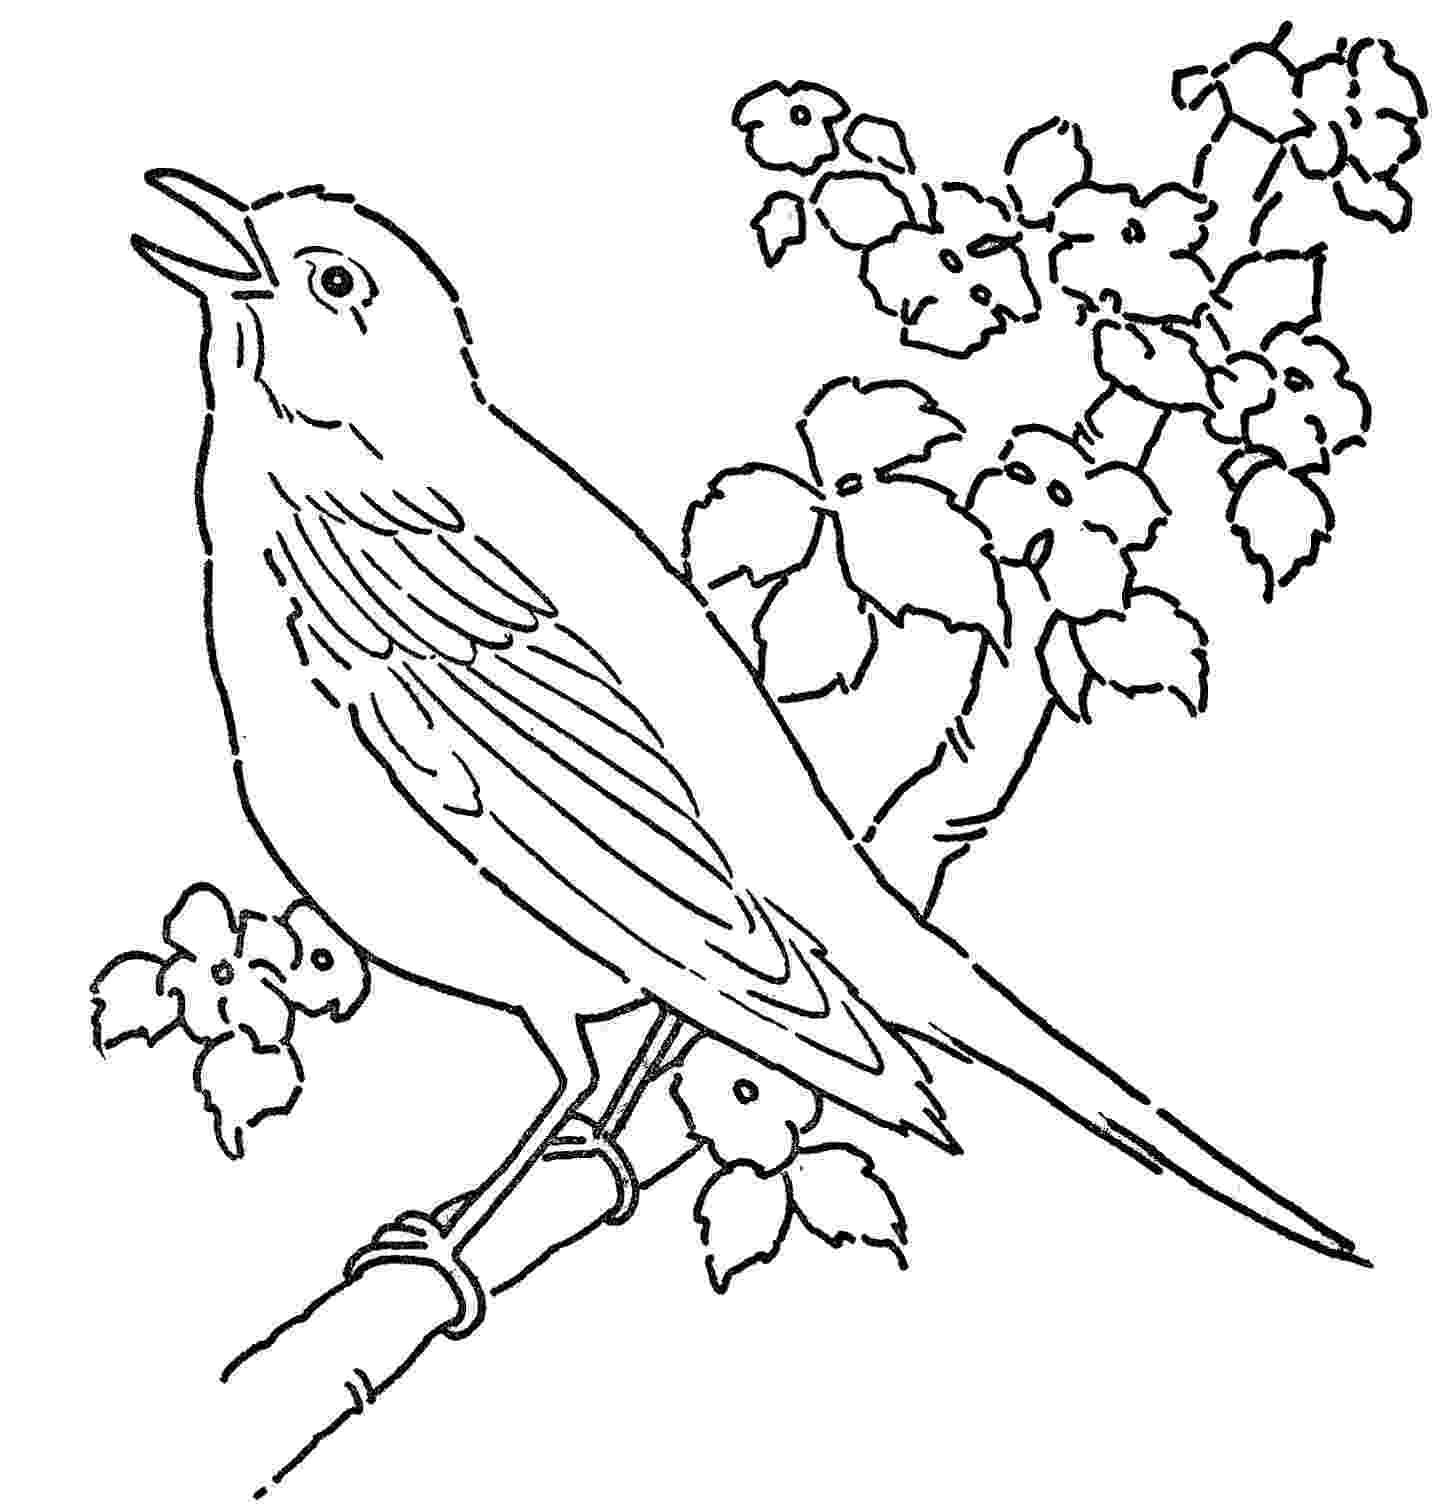 bird printable bird coloring pages to download and print for free printable bird 1 1